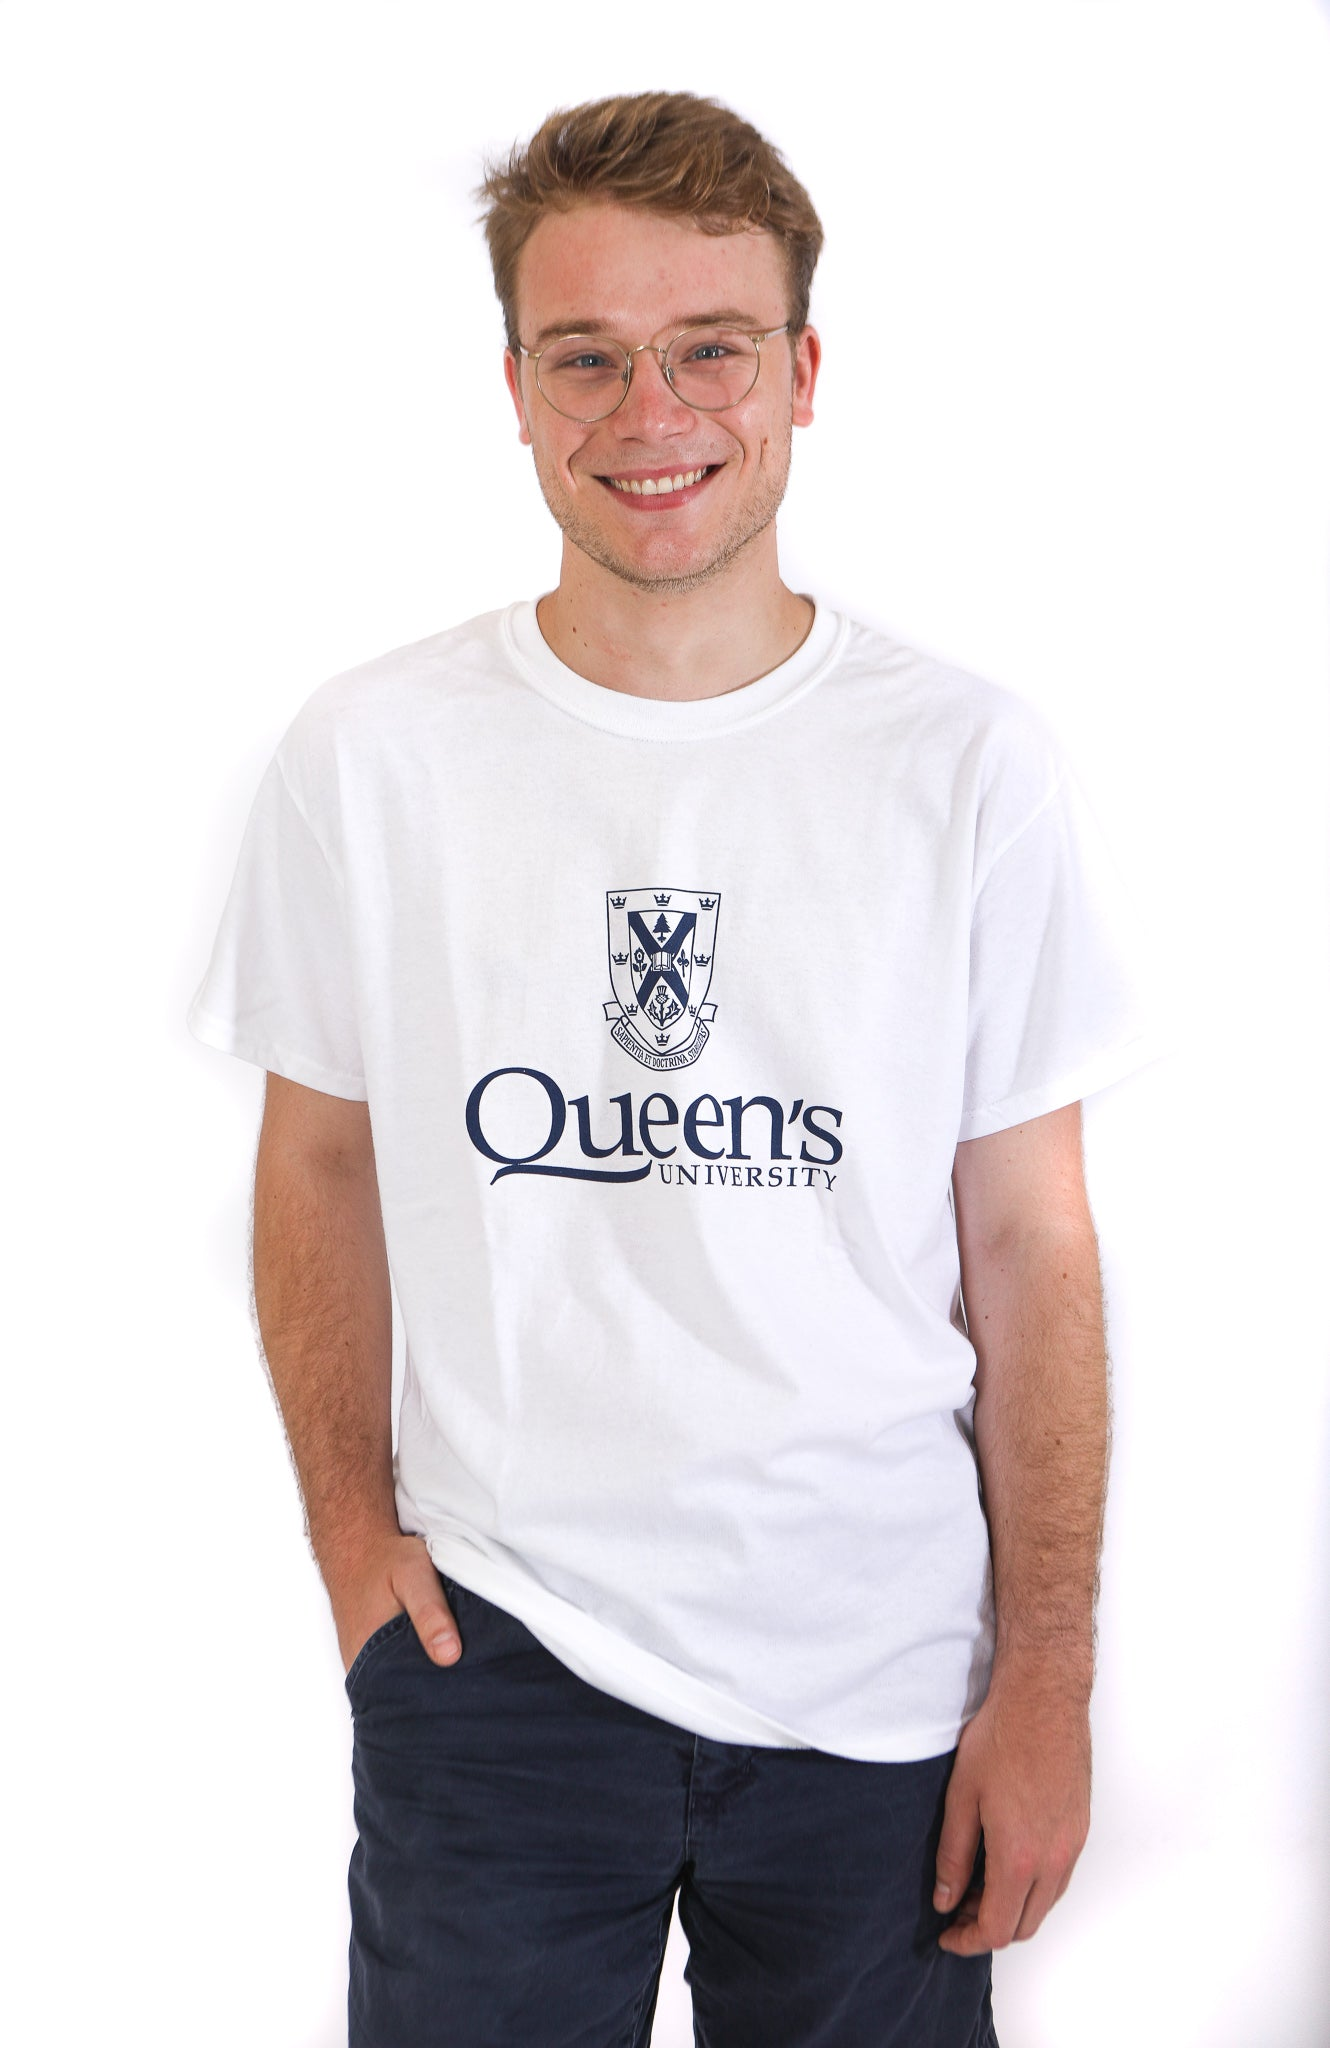 White tshirt with black queens crest